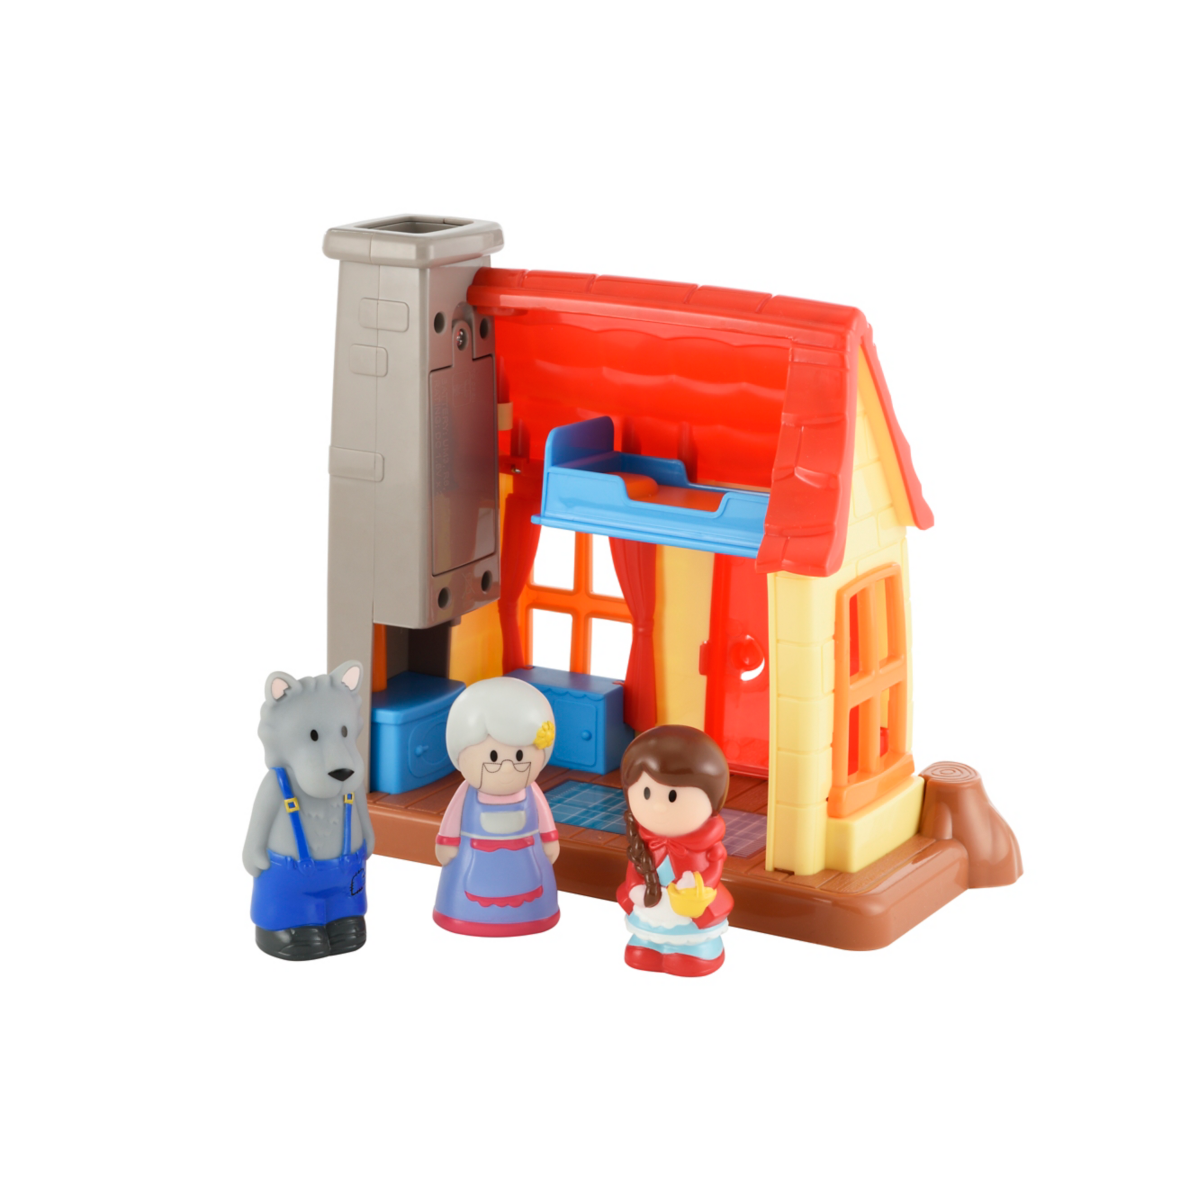 Happyland Little Red Riding Hood Play Set from Early Learning Center